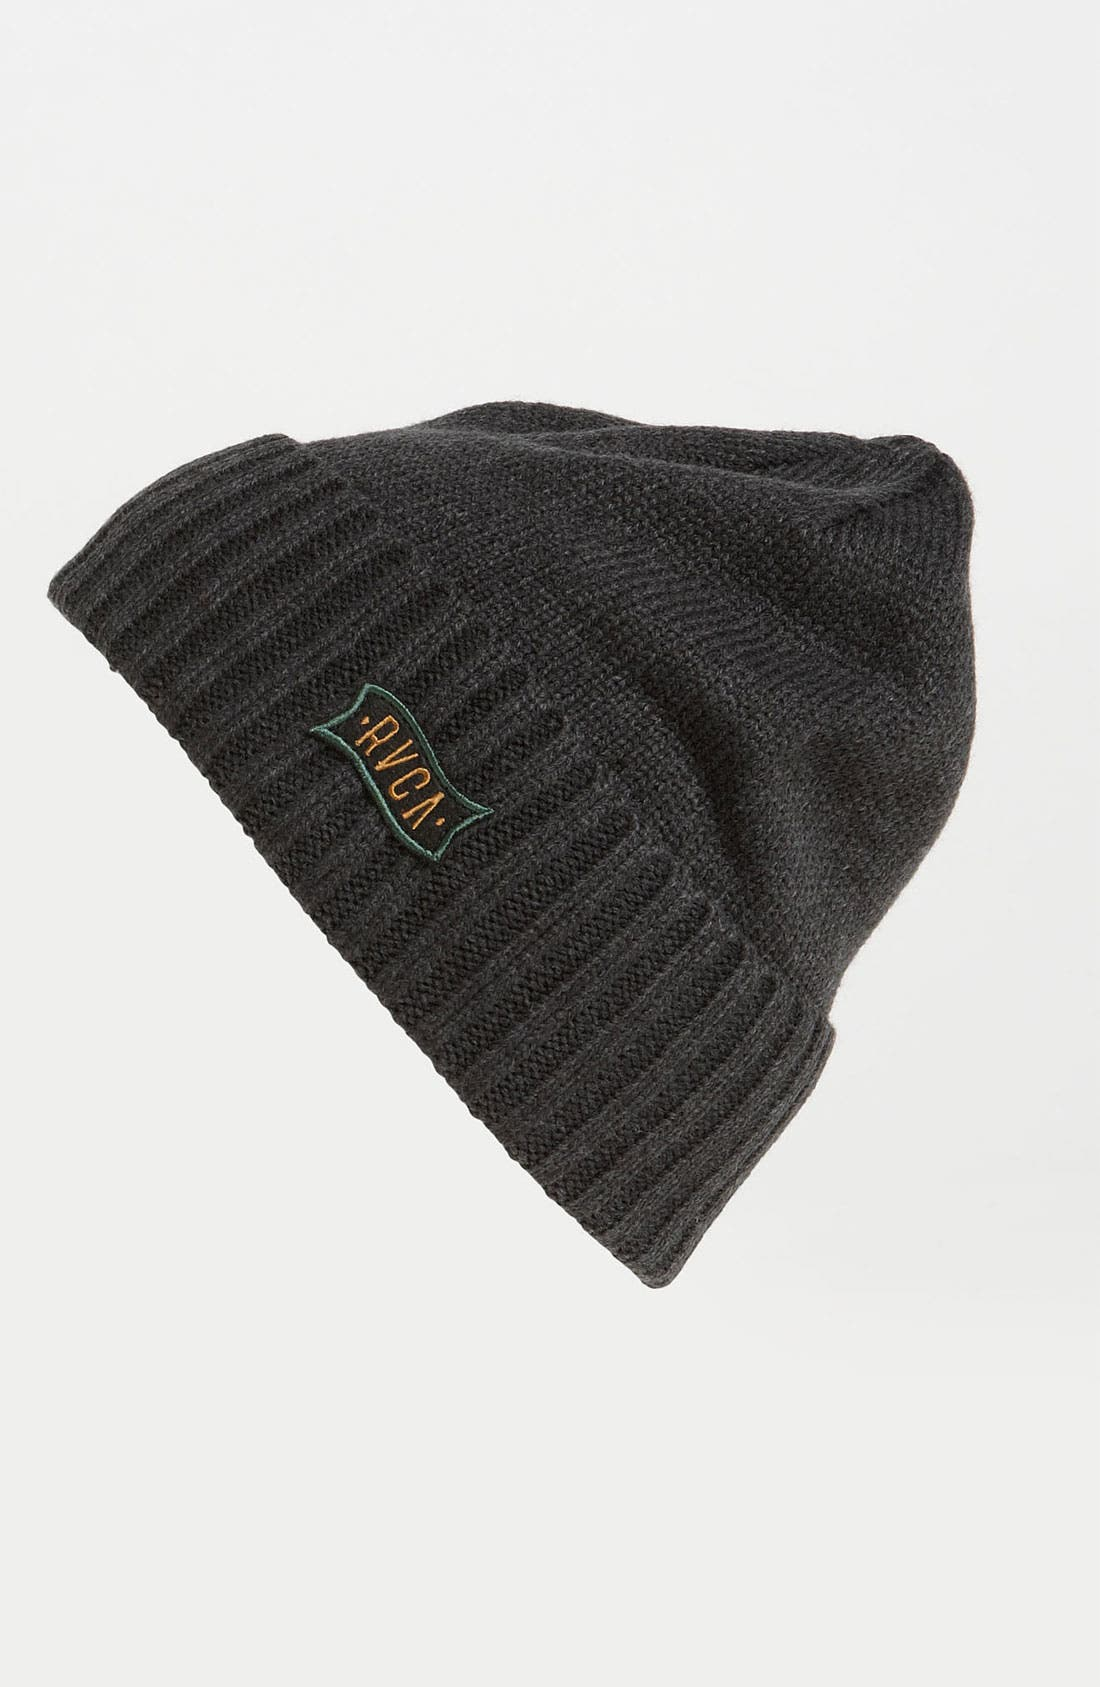 Alternate Image 1 Selected - RVCA 'Skullion' Knit Cap